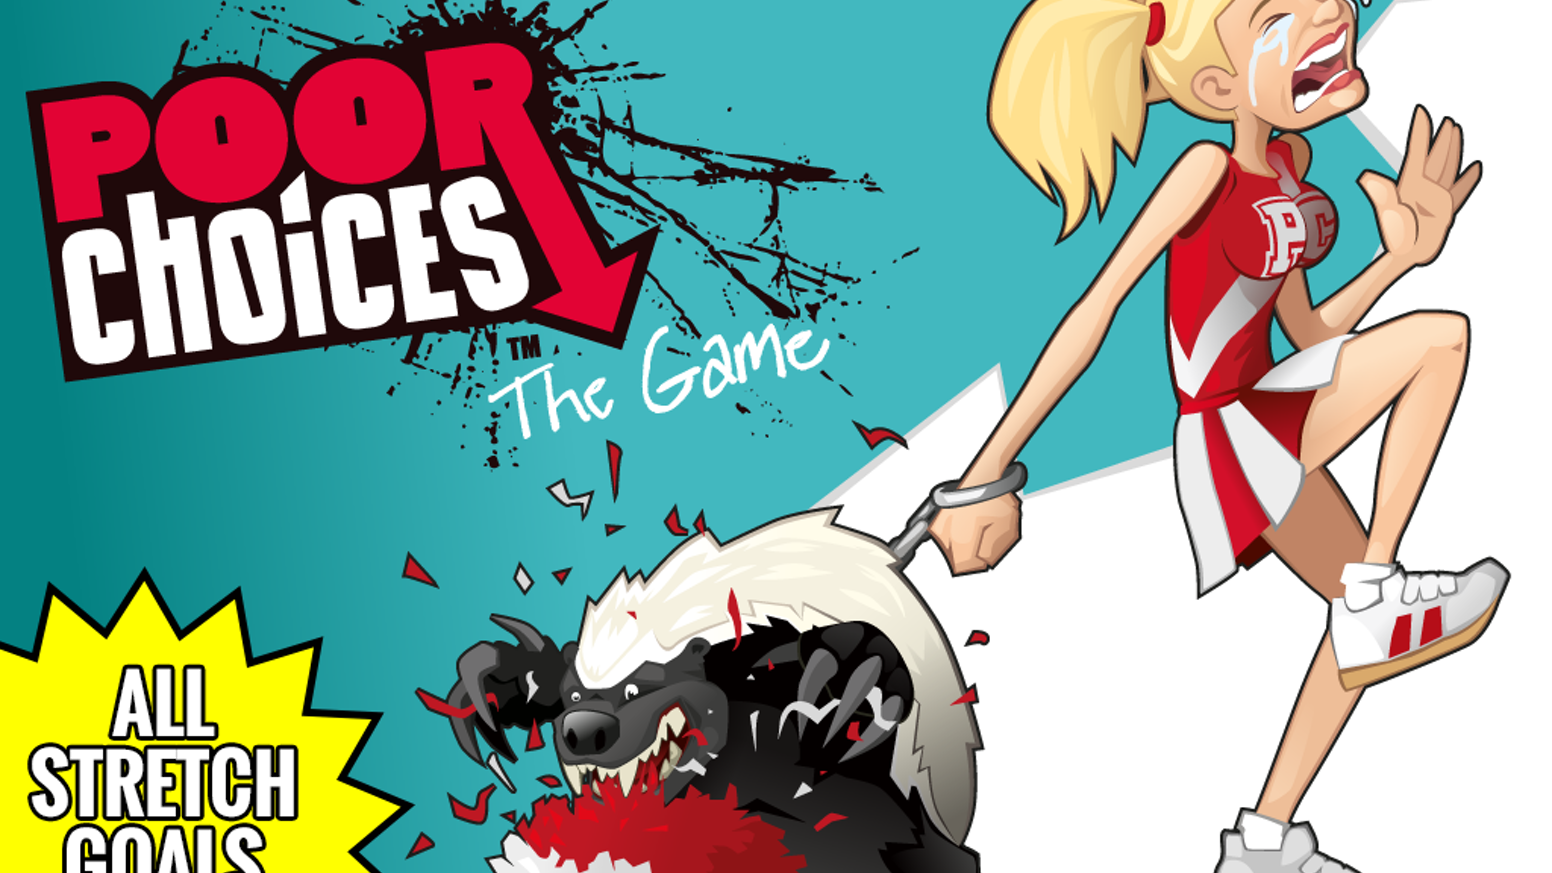 poor choices the game by wade welsh kickstarter